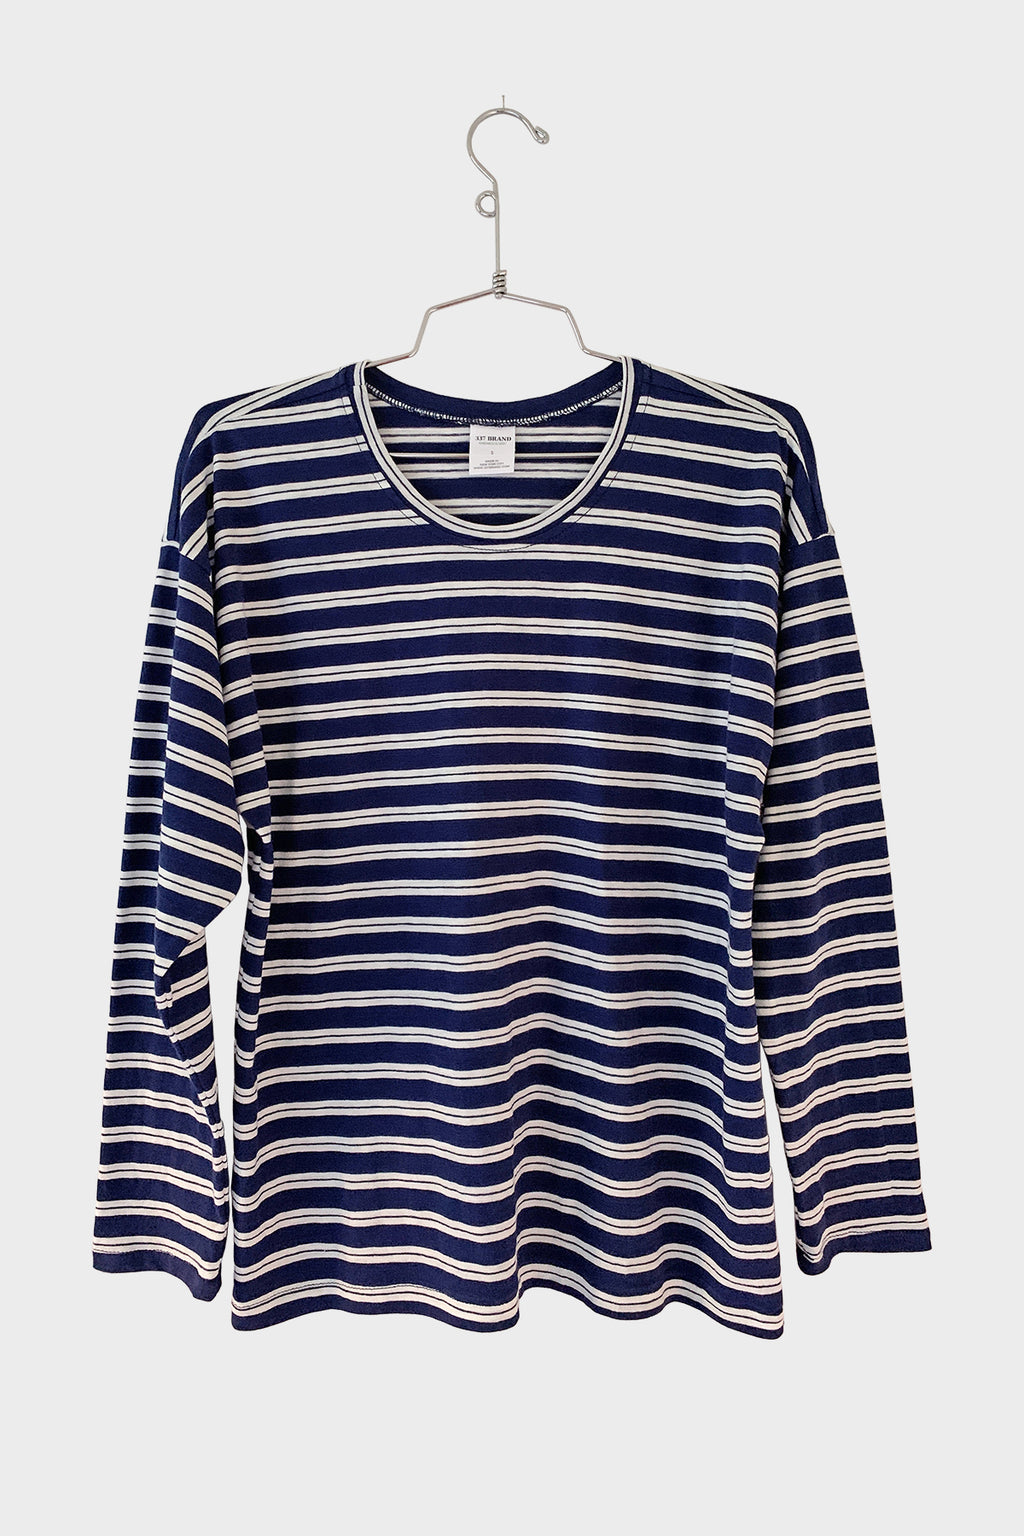 Striped Long Sleeve Tee - 337 BRAND Women's Sustainable Loungewear